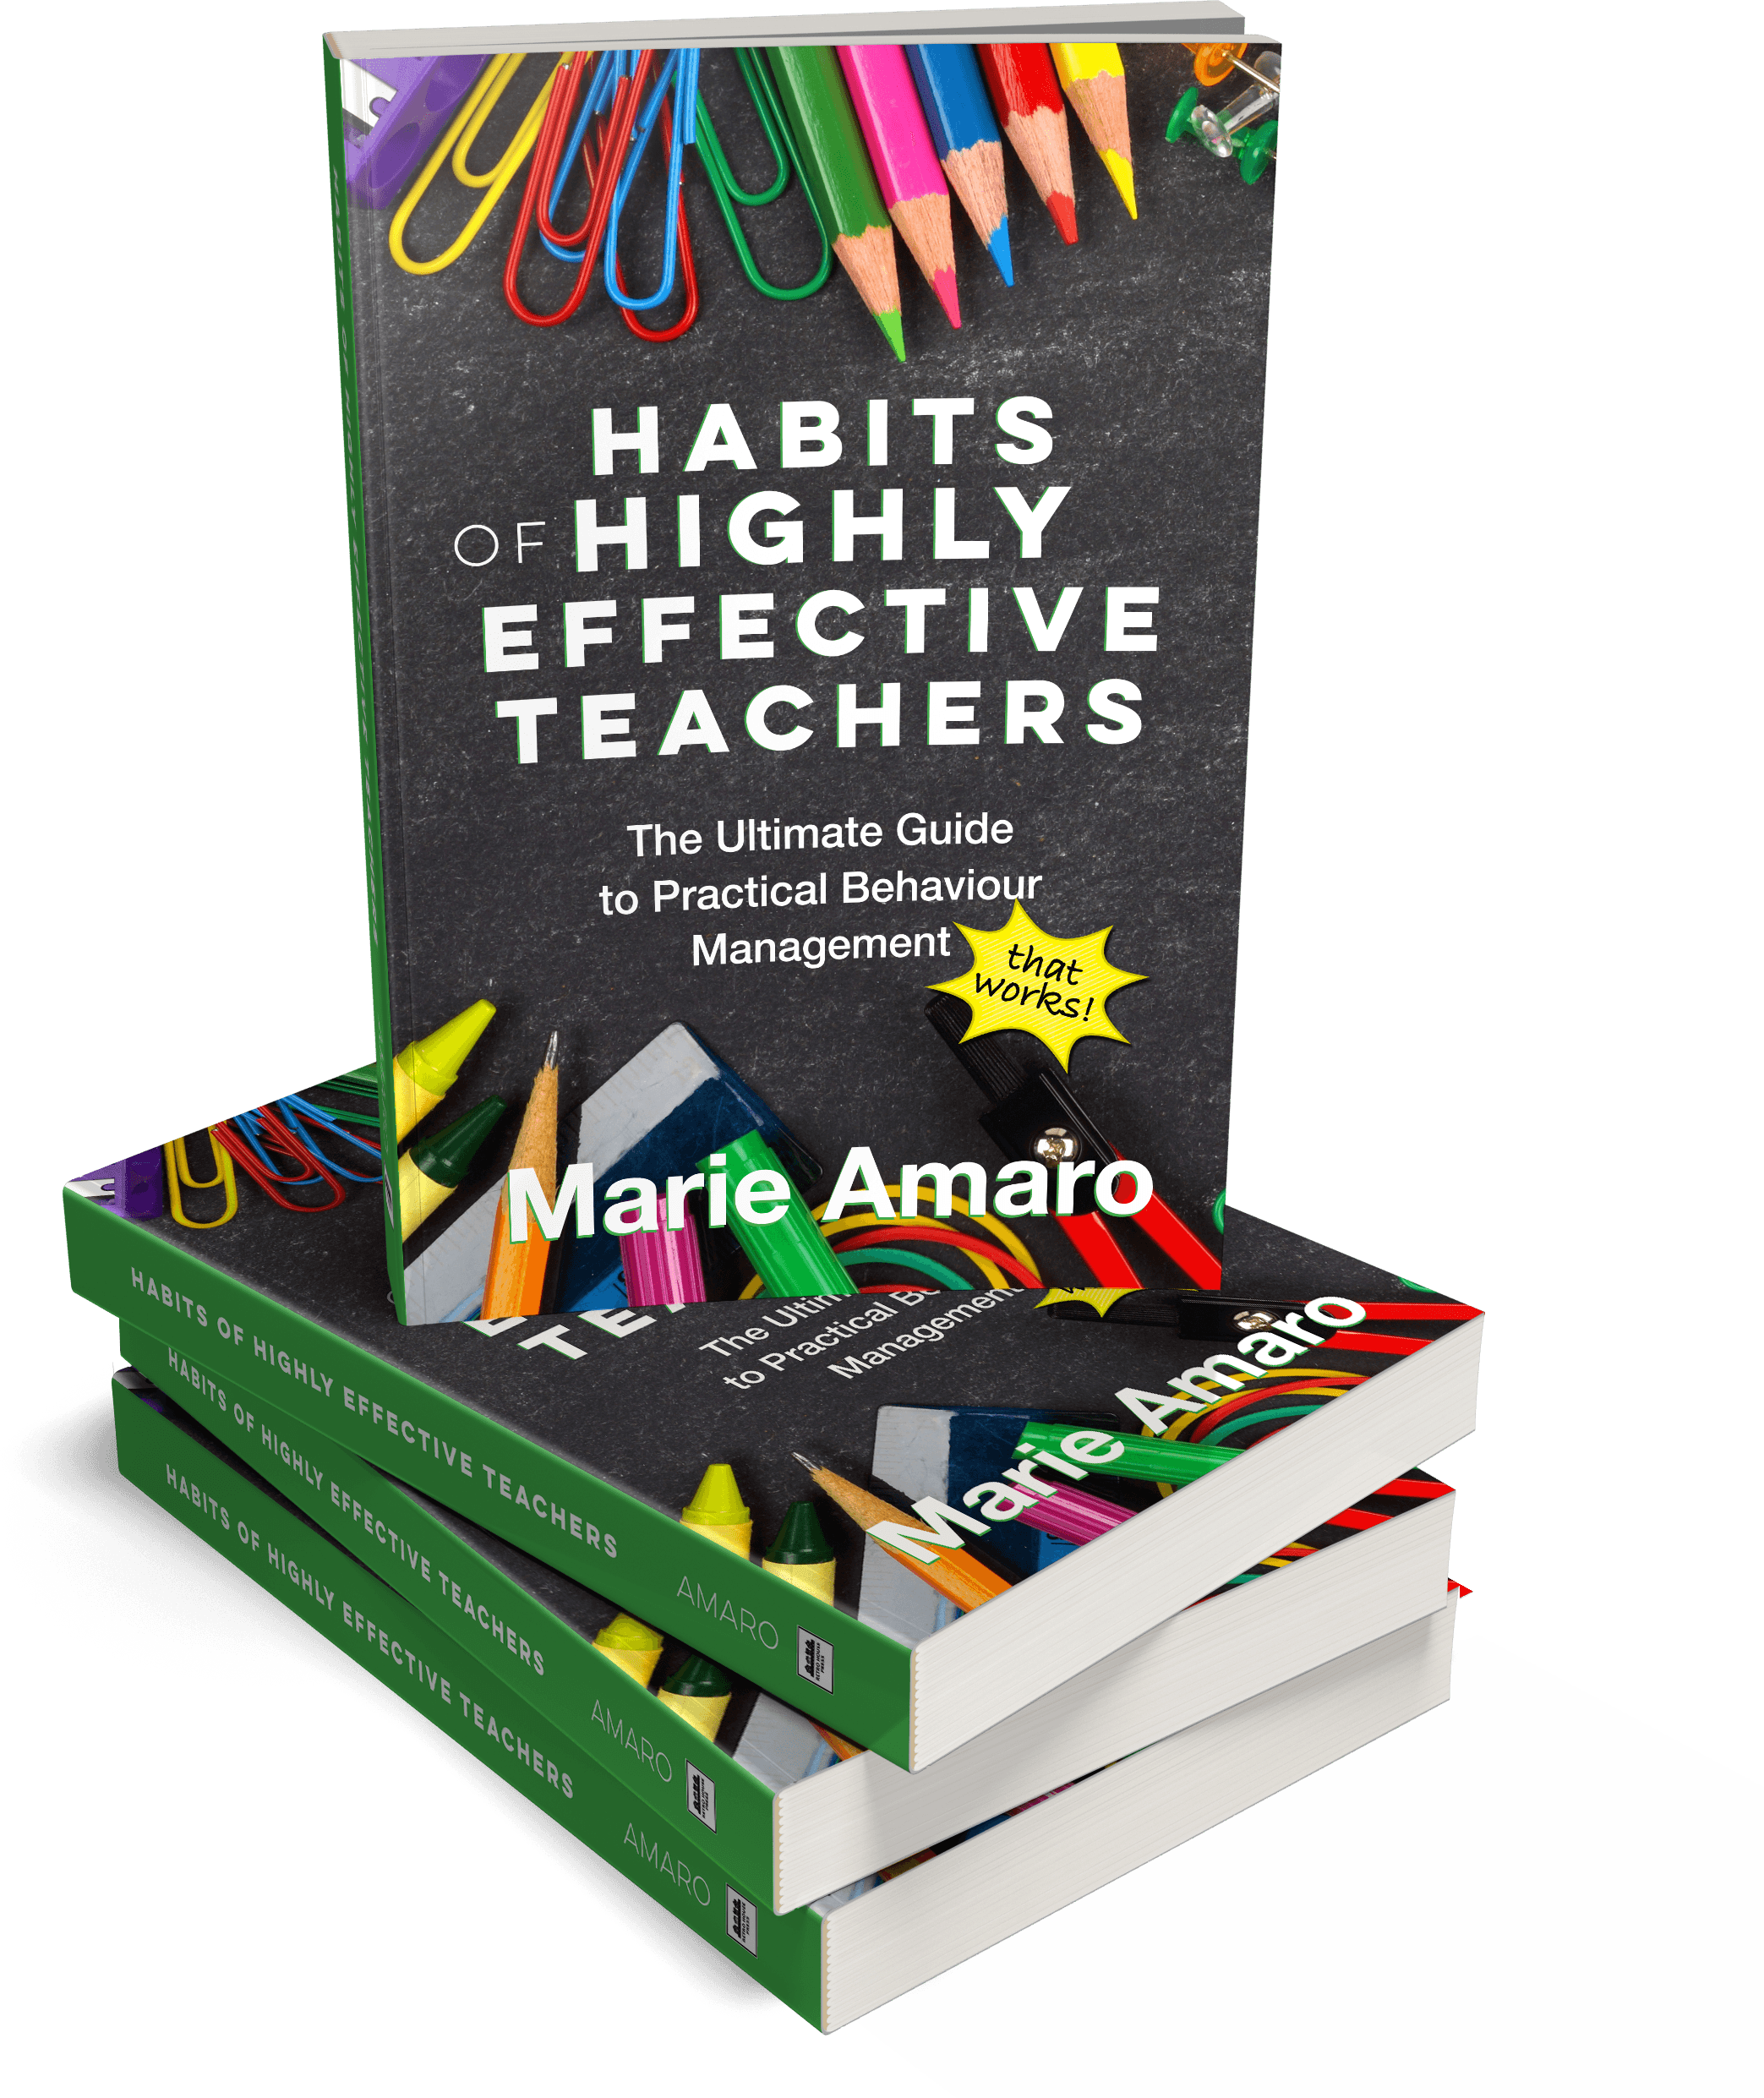 Habits of Highly Effective Teachers BOOK